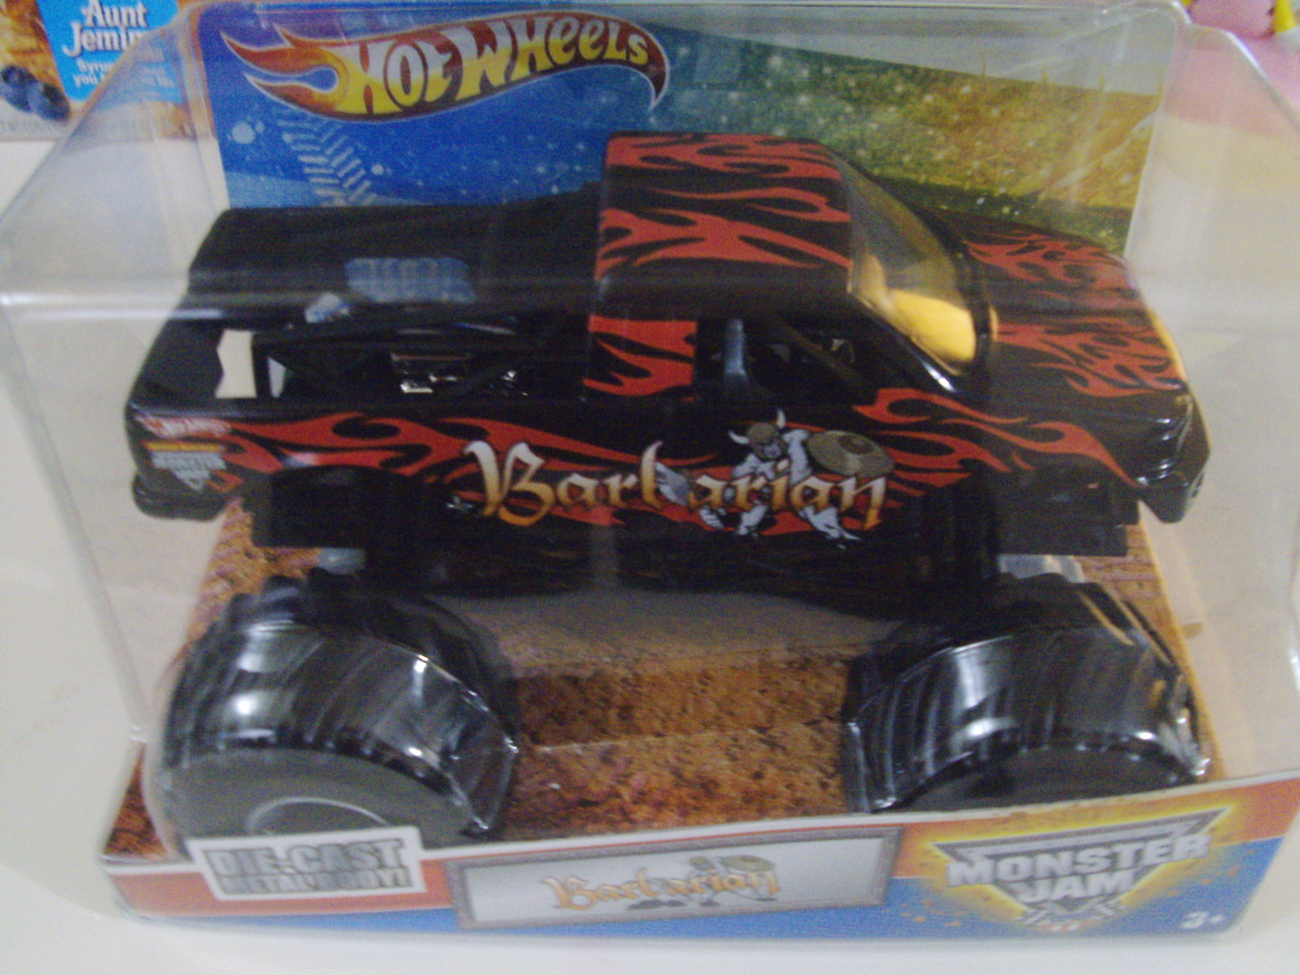 Hot Wheels Monster Jam Barbarian truck 1:24 scale - New